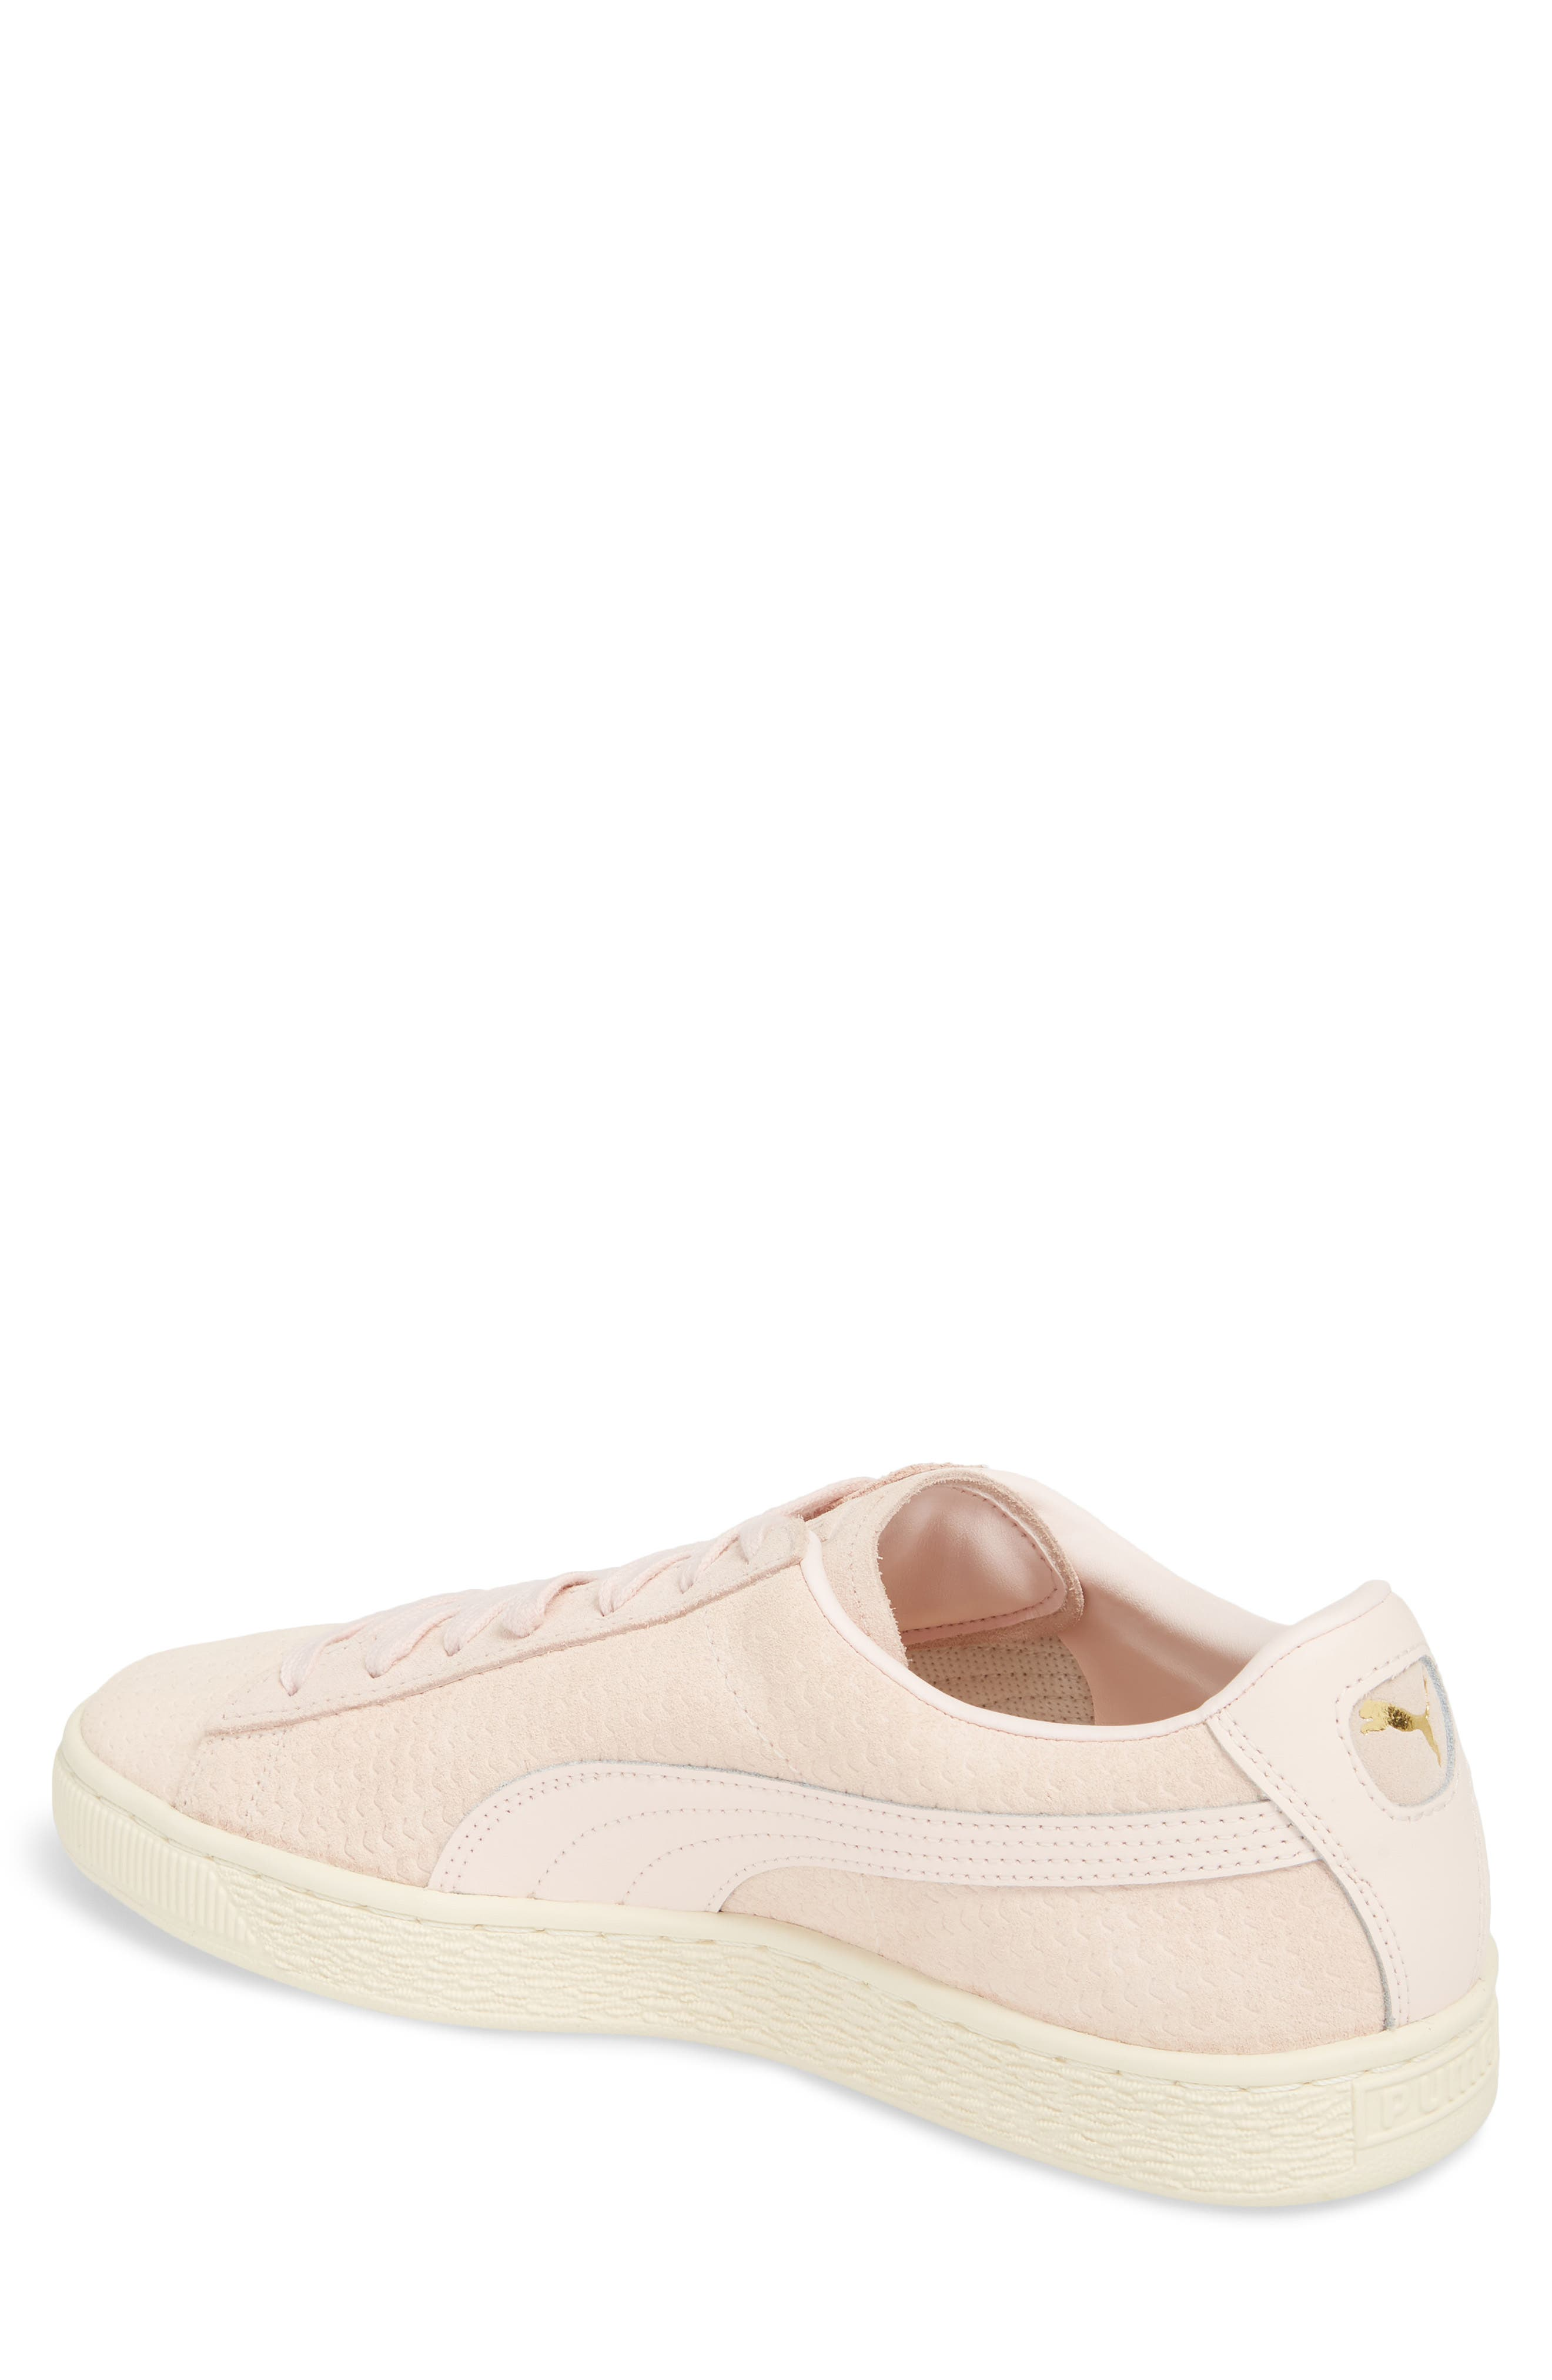 Suede Classic Perforation Sneaker,                             Alternate thumbnail 2, color,                             Pearl/ Whisper White Suede